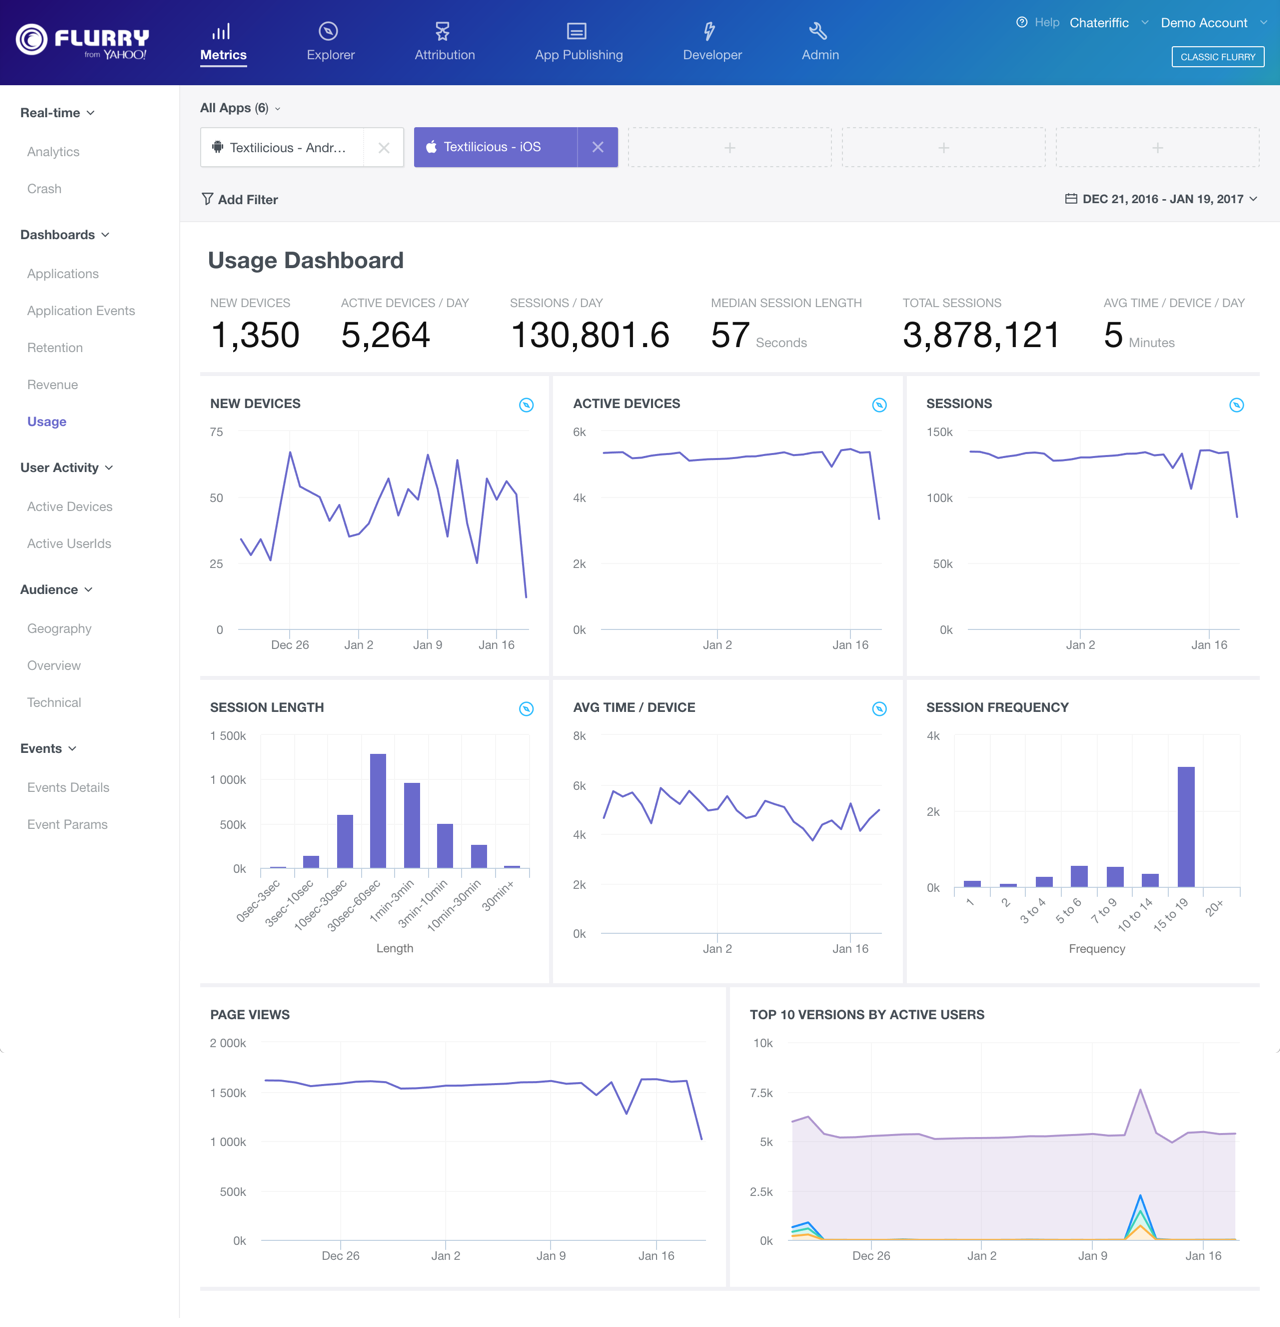 analytics-usage-dashboard